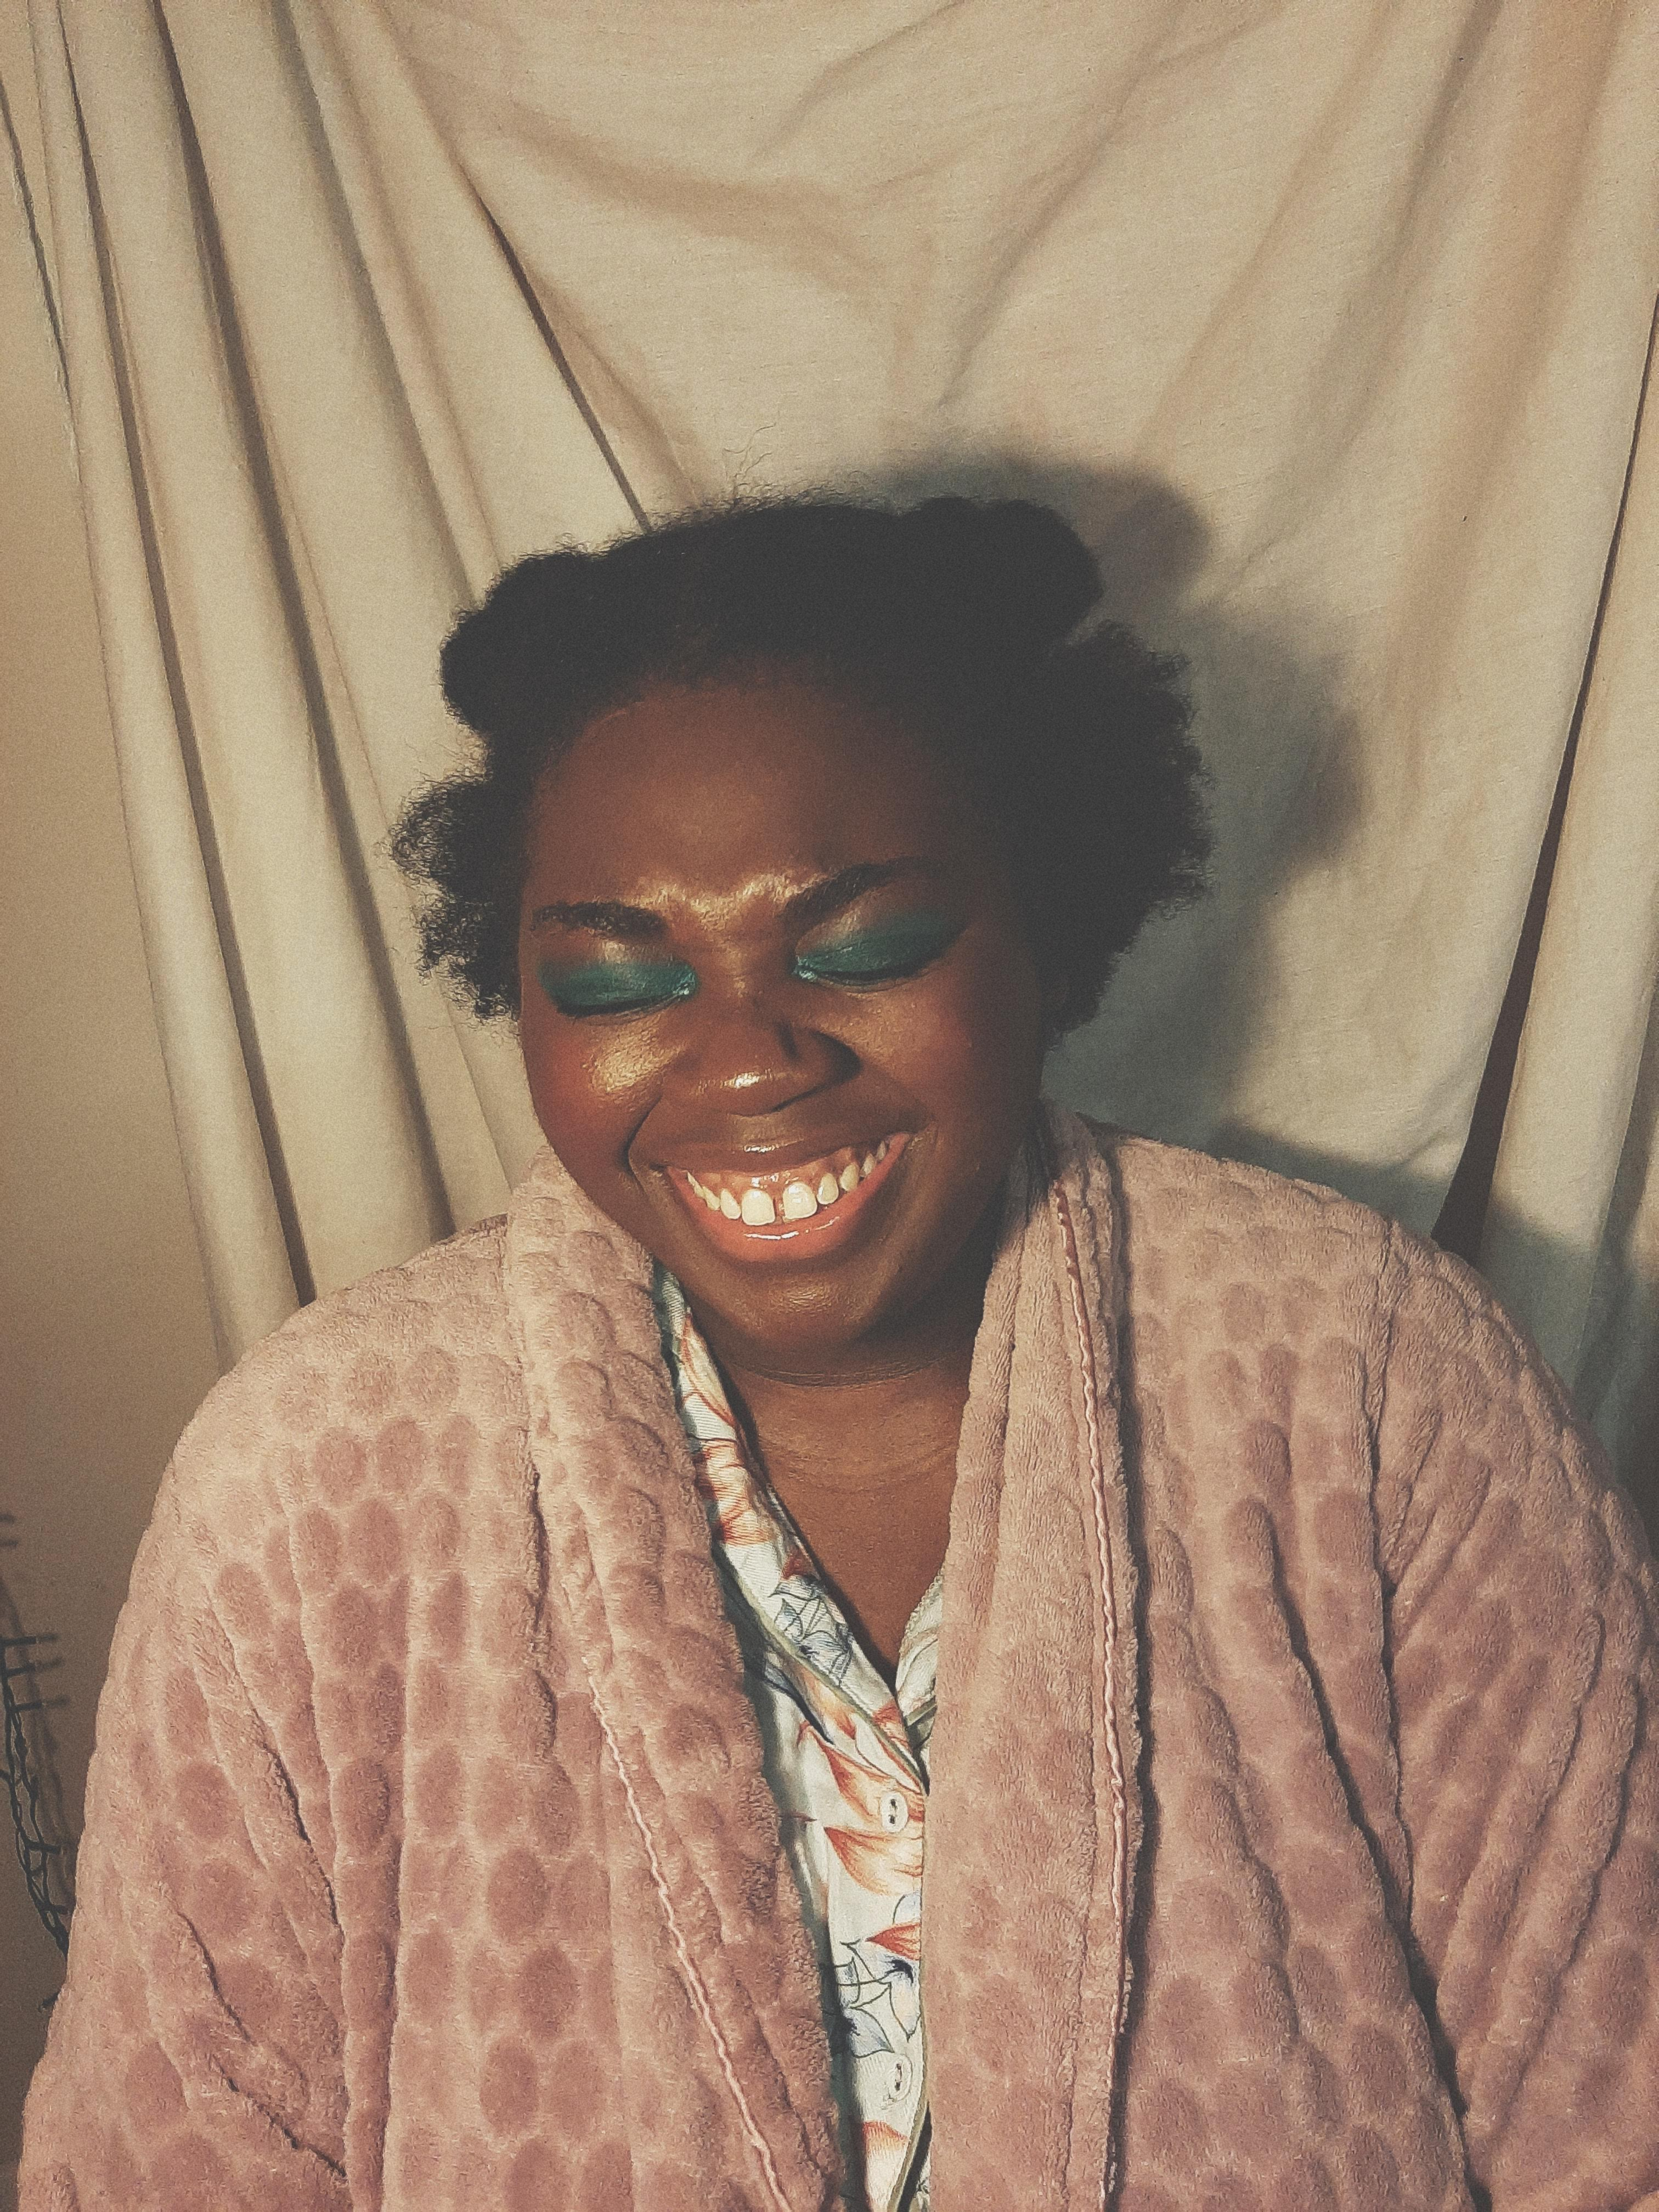 Chizoba is smiling with her eyes closed. she is wearing a full face of make-up including green eyeshadow and clear lipgloss. she is also wearing green floral pyjamas and a pink dressing gown